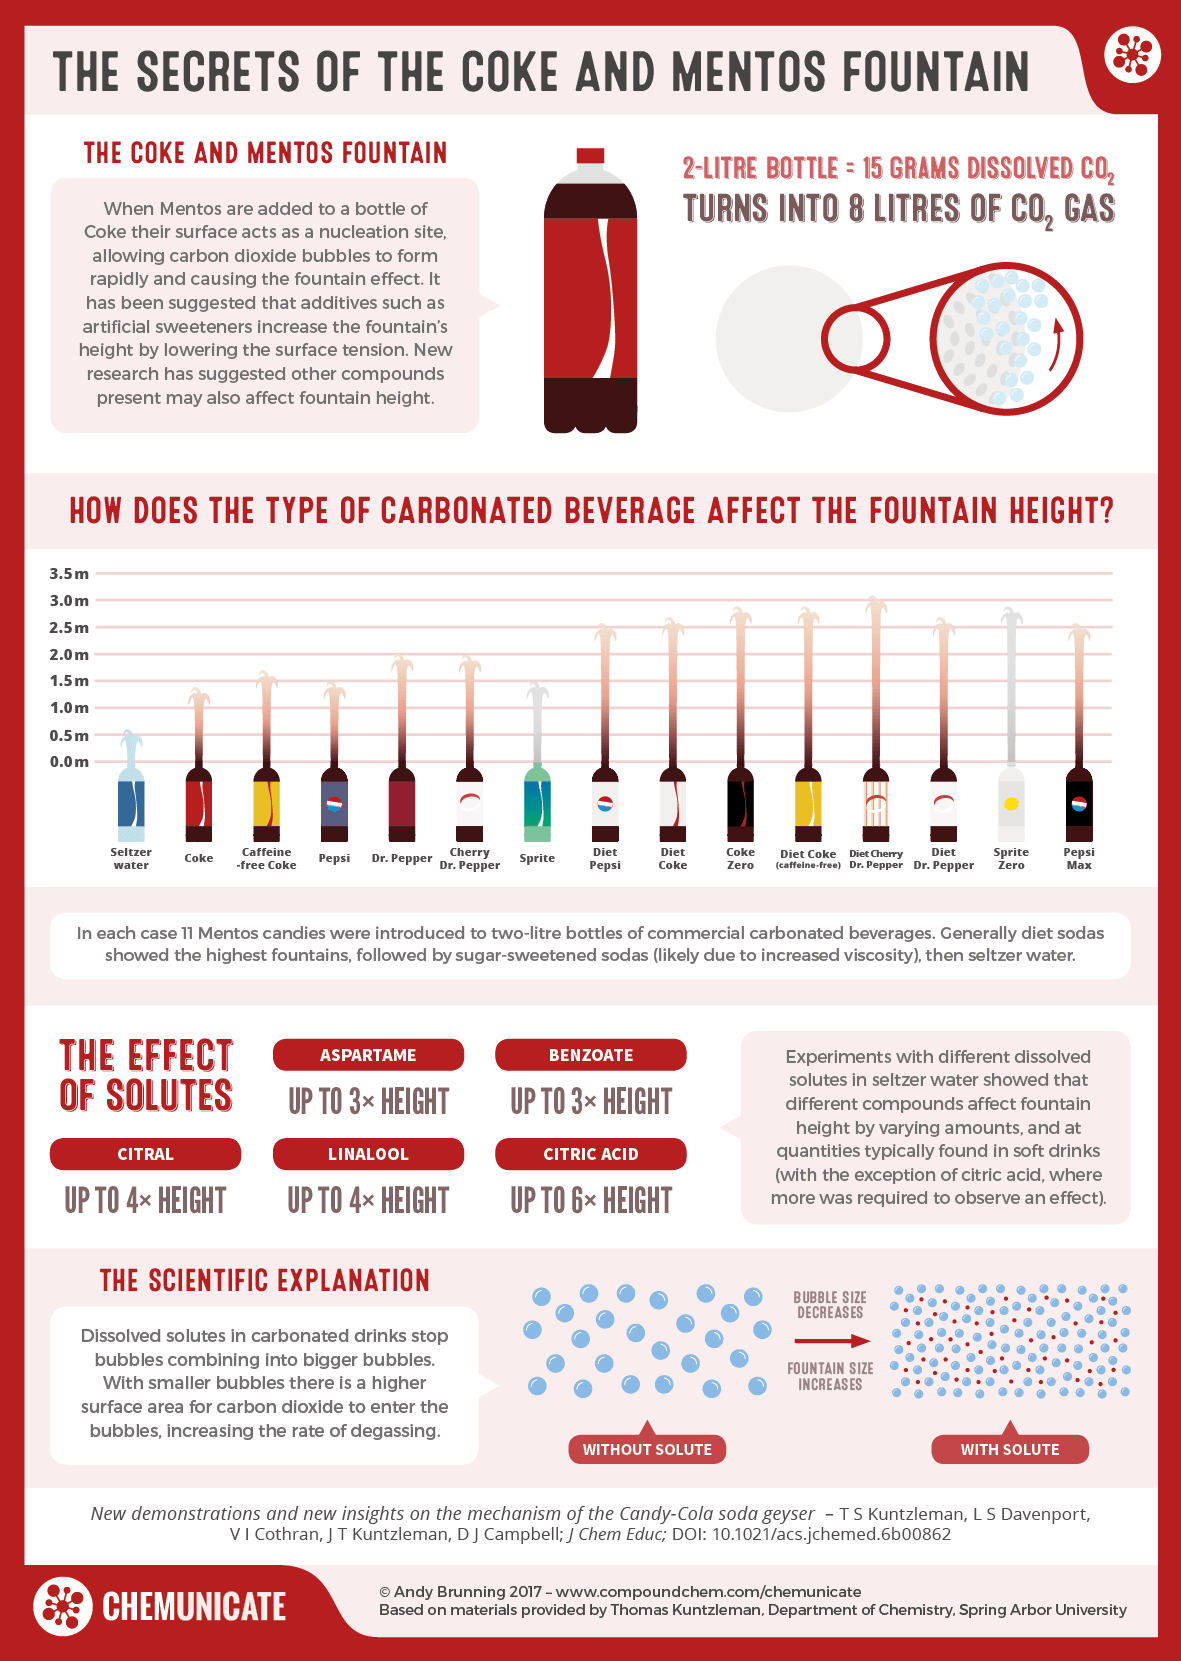 The Secrets of the Coke and Mentos Fountain | Compound Interest